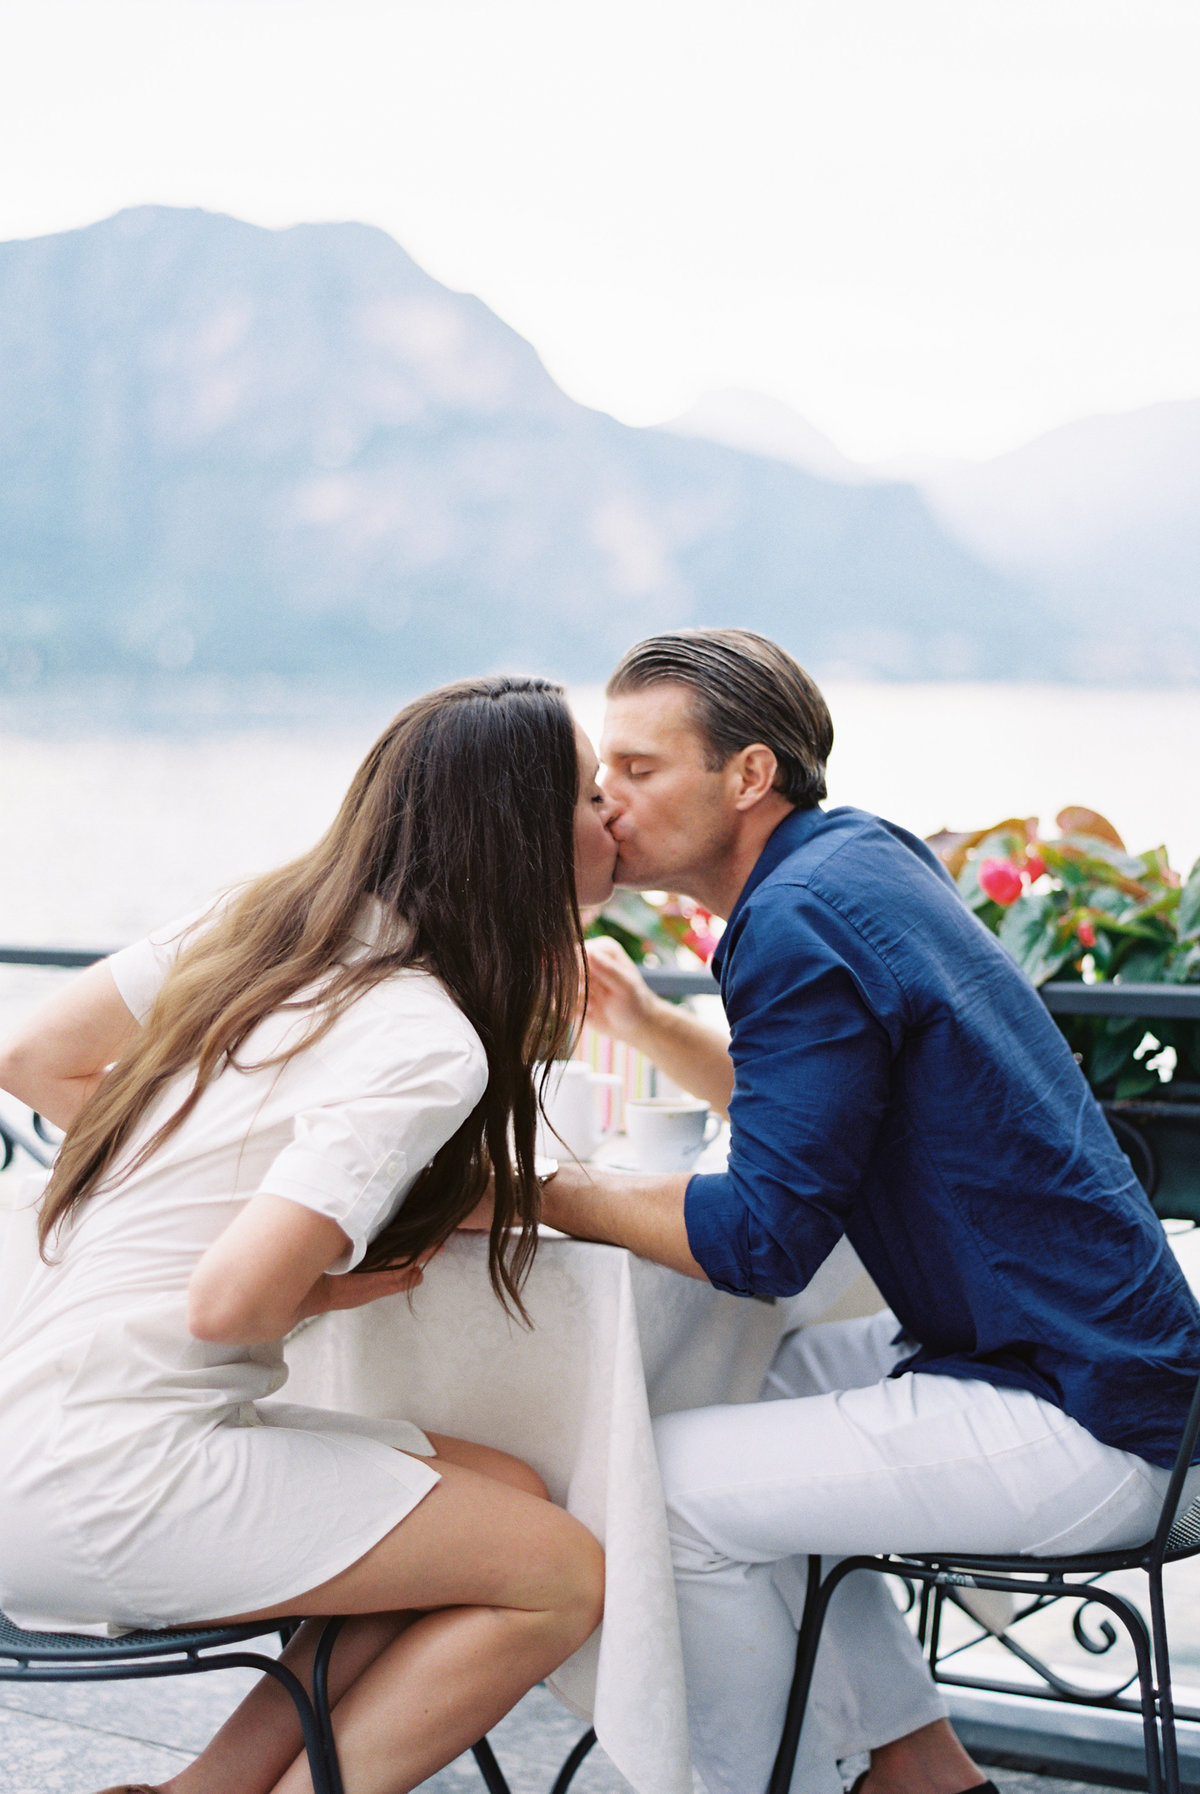 lake-como-italy-destination-wedding-honeymoon-session-melanie-gabrielle-photogrpahy-054